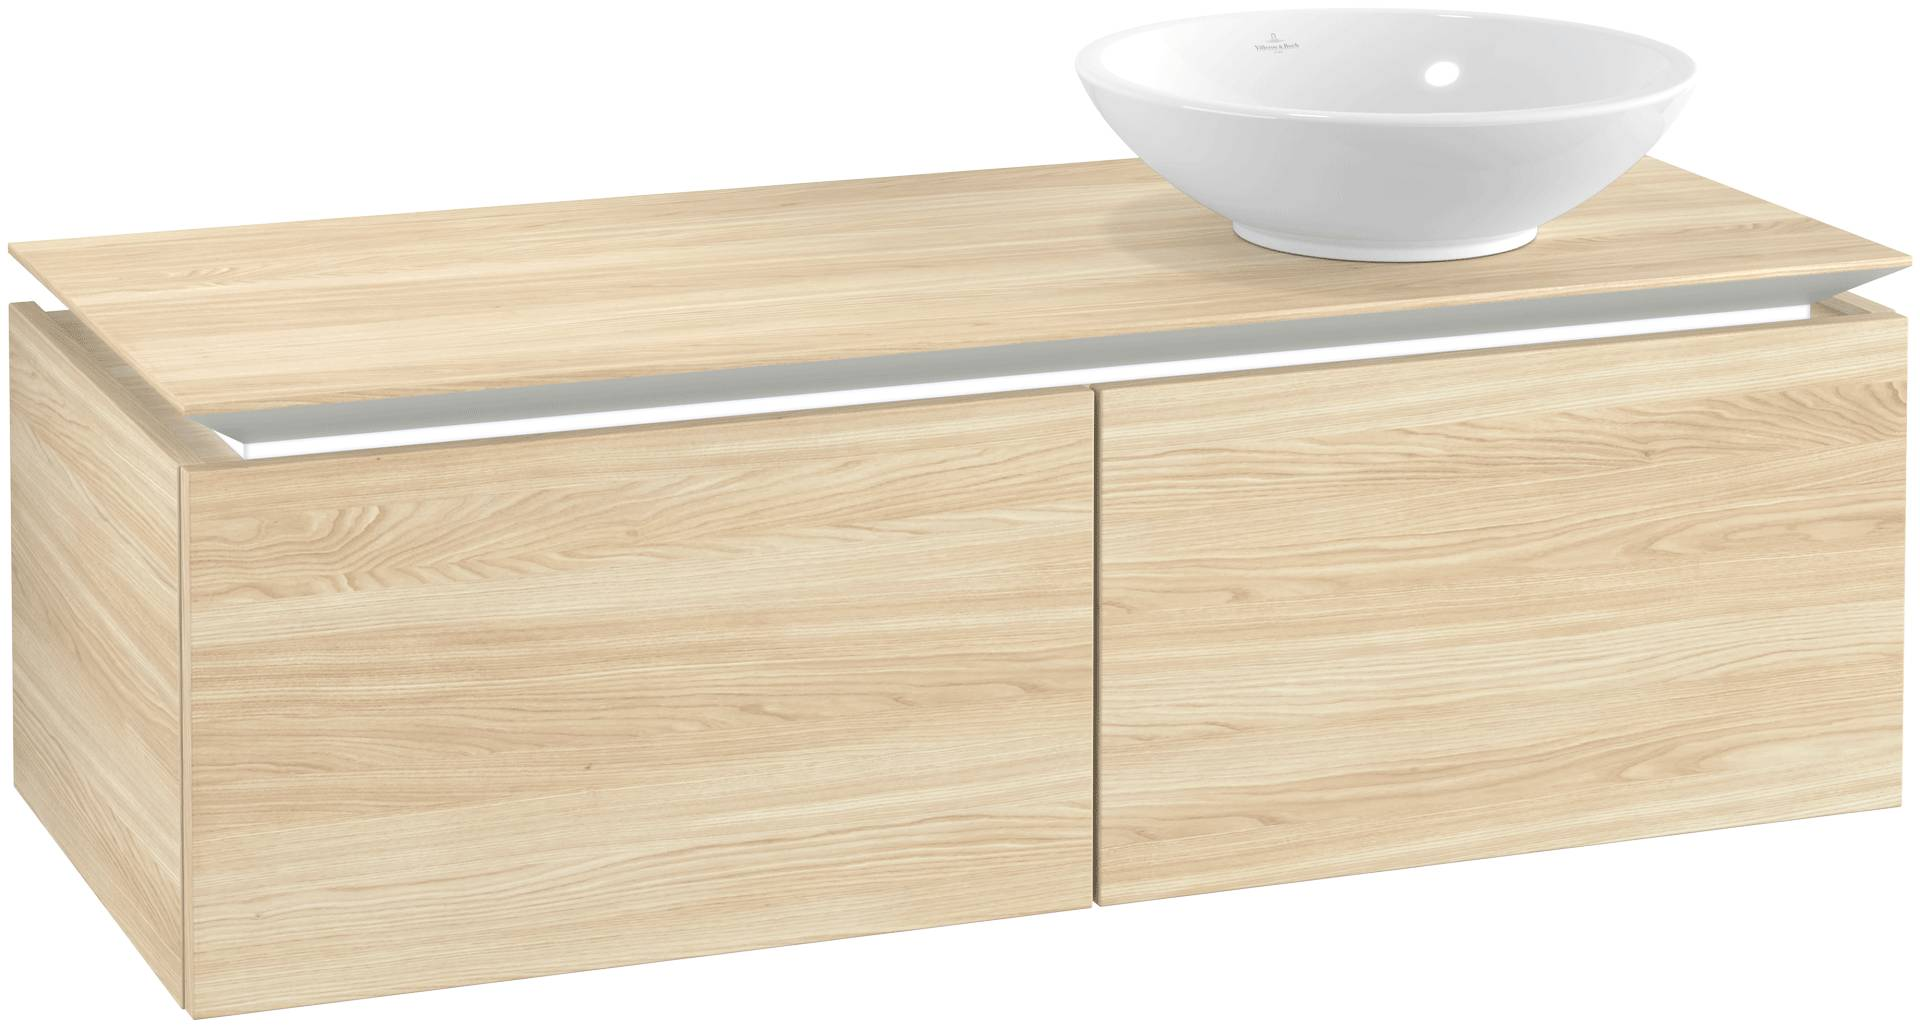 Villeroy & Boch Villeroy & Boch Legato - Meuble sous lavabo with 2 drawers & 1 cut-out right 1200 x 380 x 500mm orme impresso